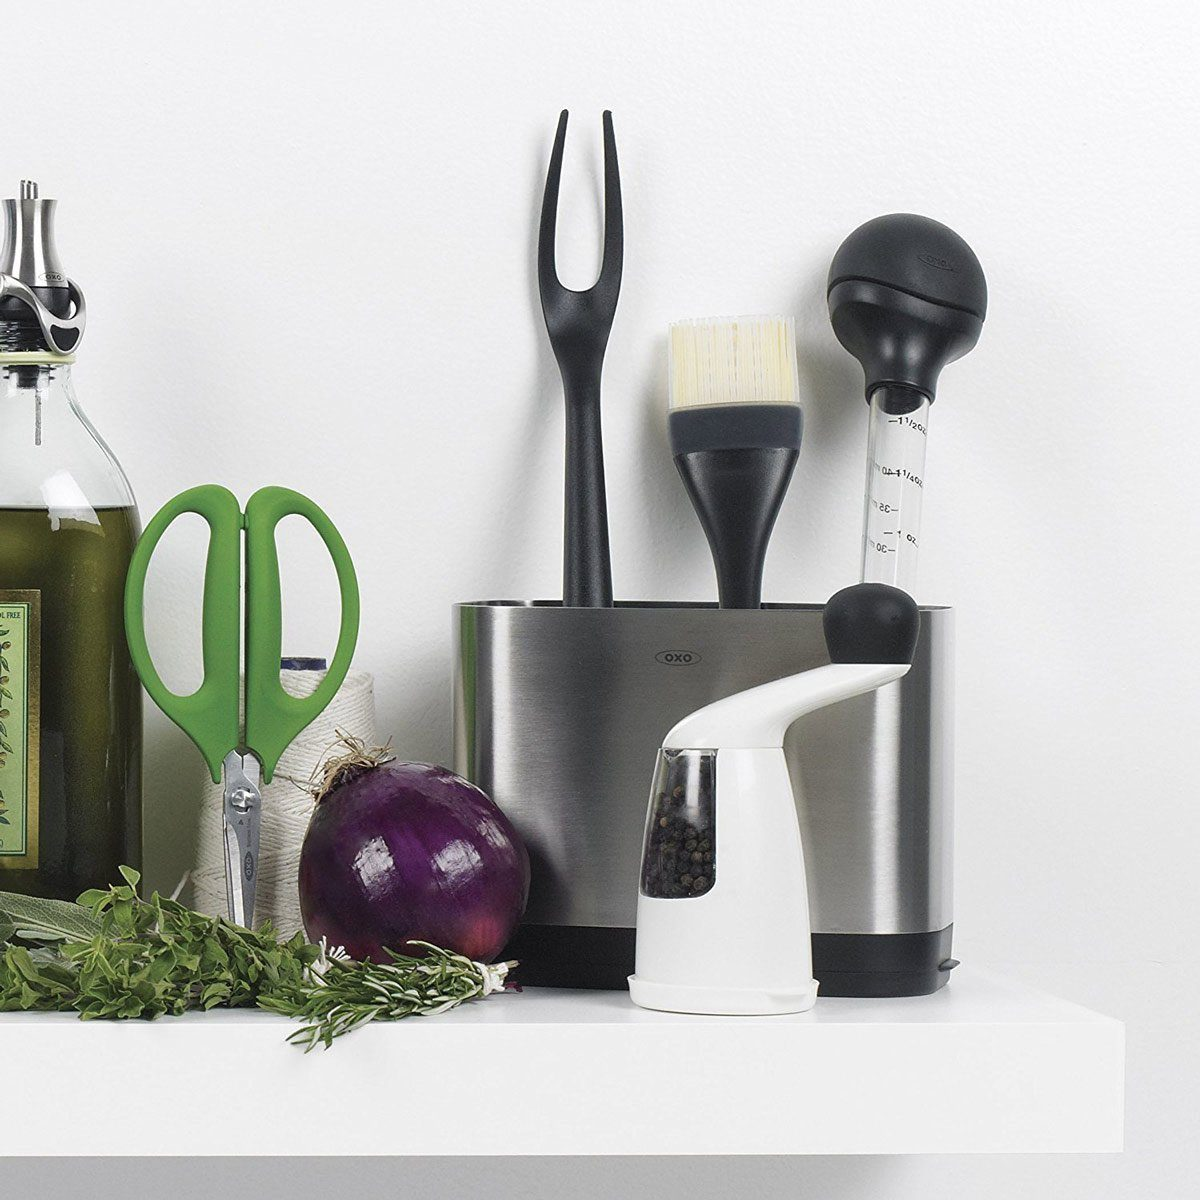 oxo brush with other food tools